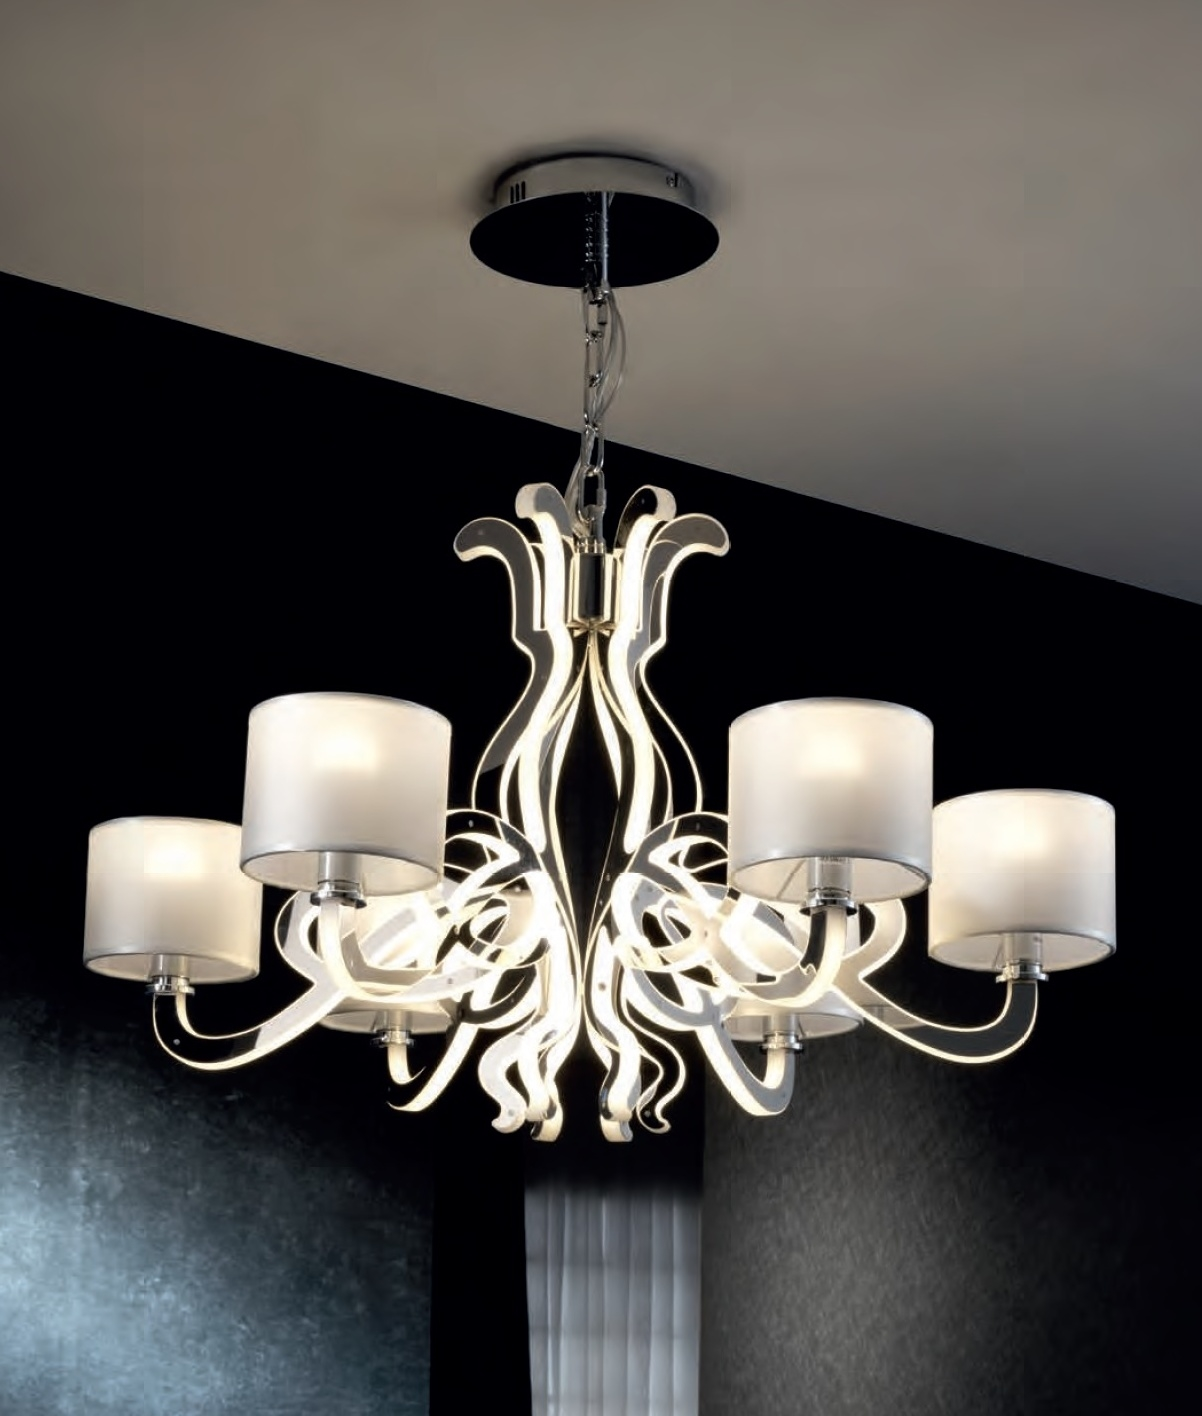 Ghost design 6 light chandelier with shades leds hover to zoom arubaitofo Choice Image